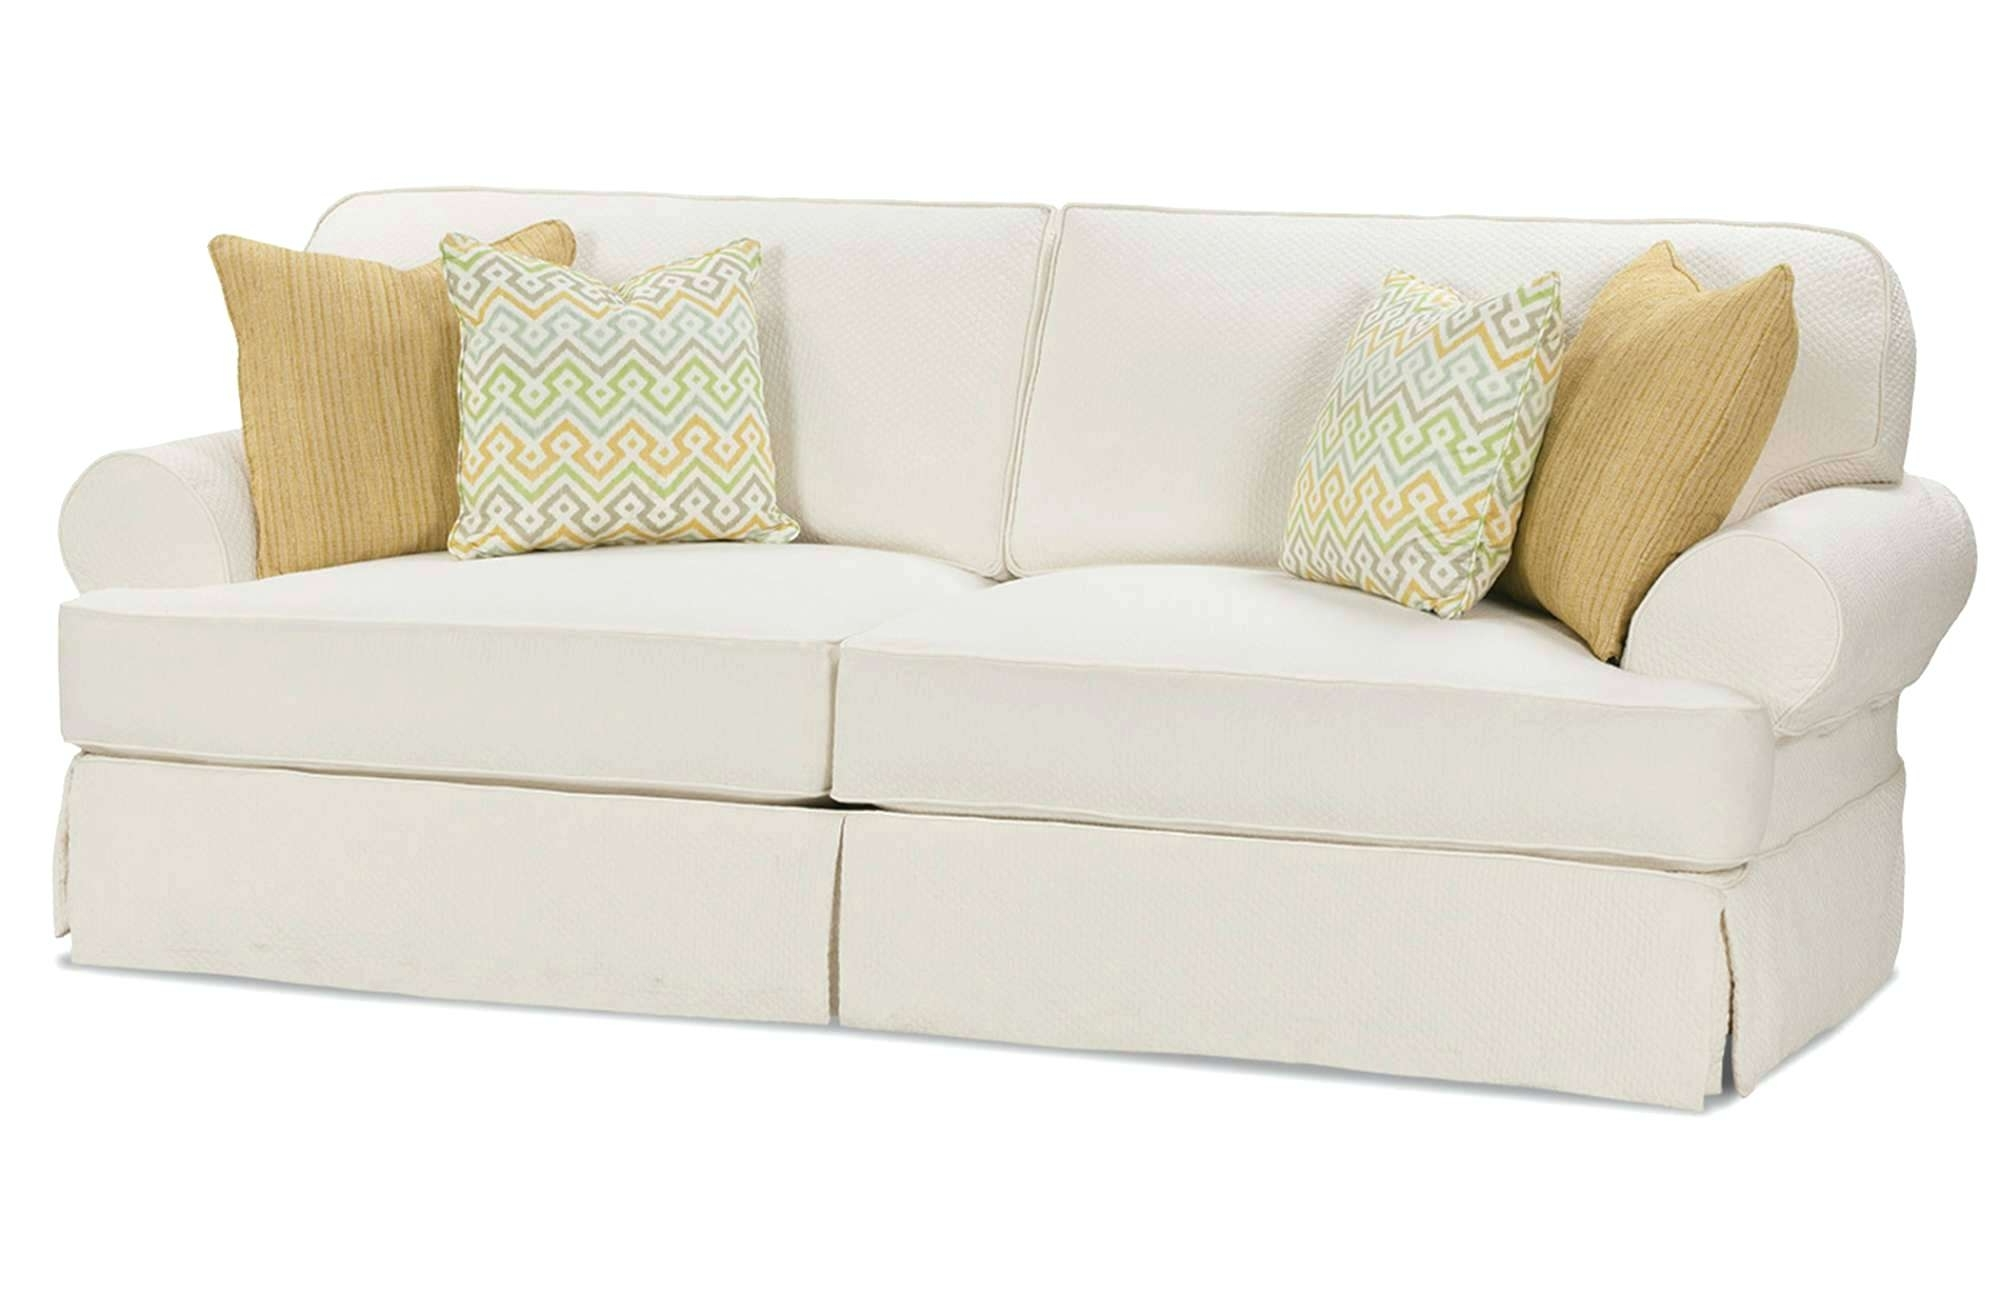 Most Popular Slipcovers Sofas Pertaining To Slipcover For Sectional – Biophilessurf (View 10 of 15)